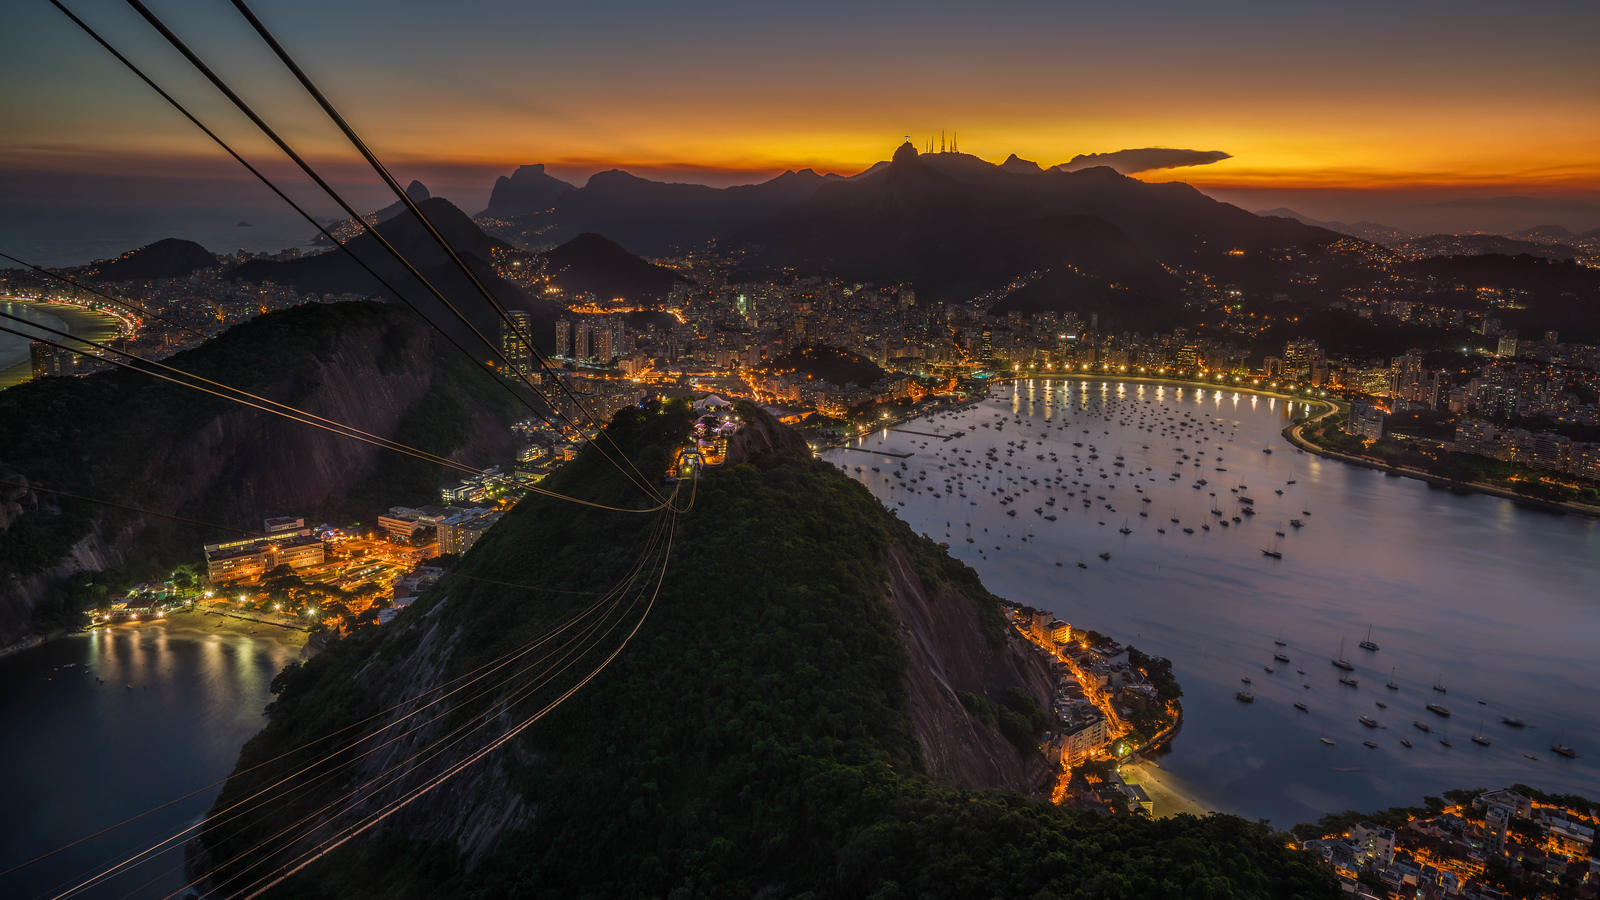 Sunset from Sugarloaf Mountain in Rio, Brazil